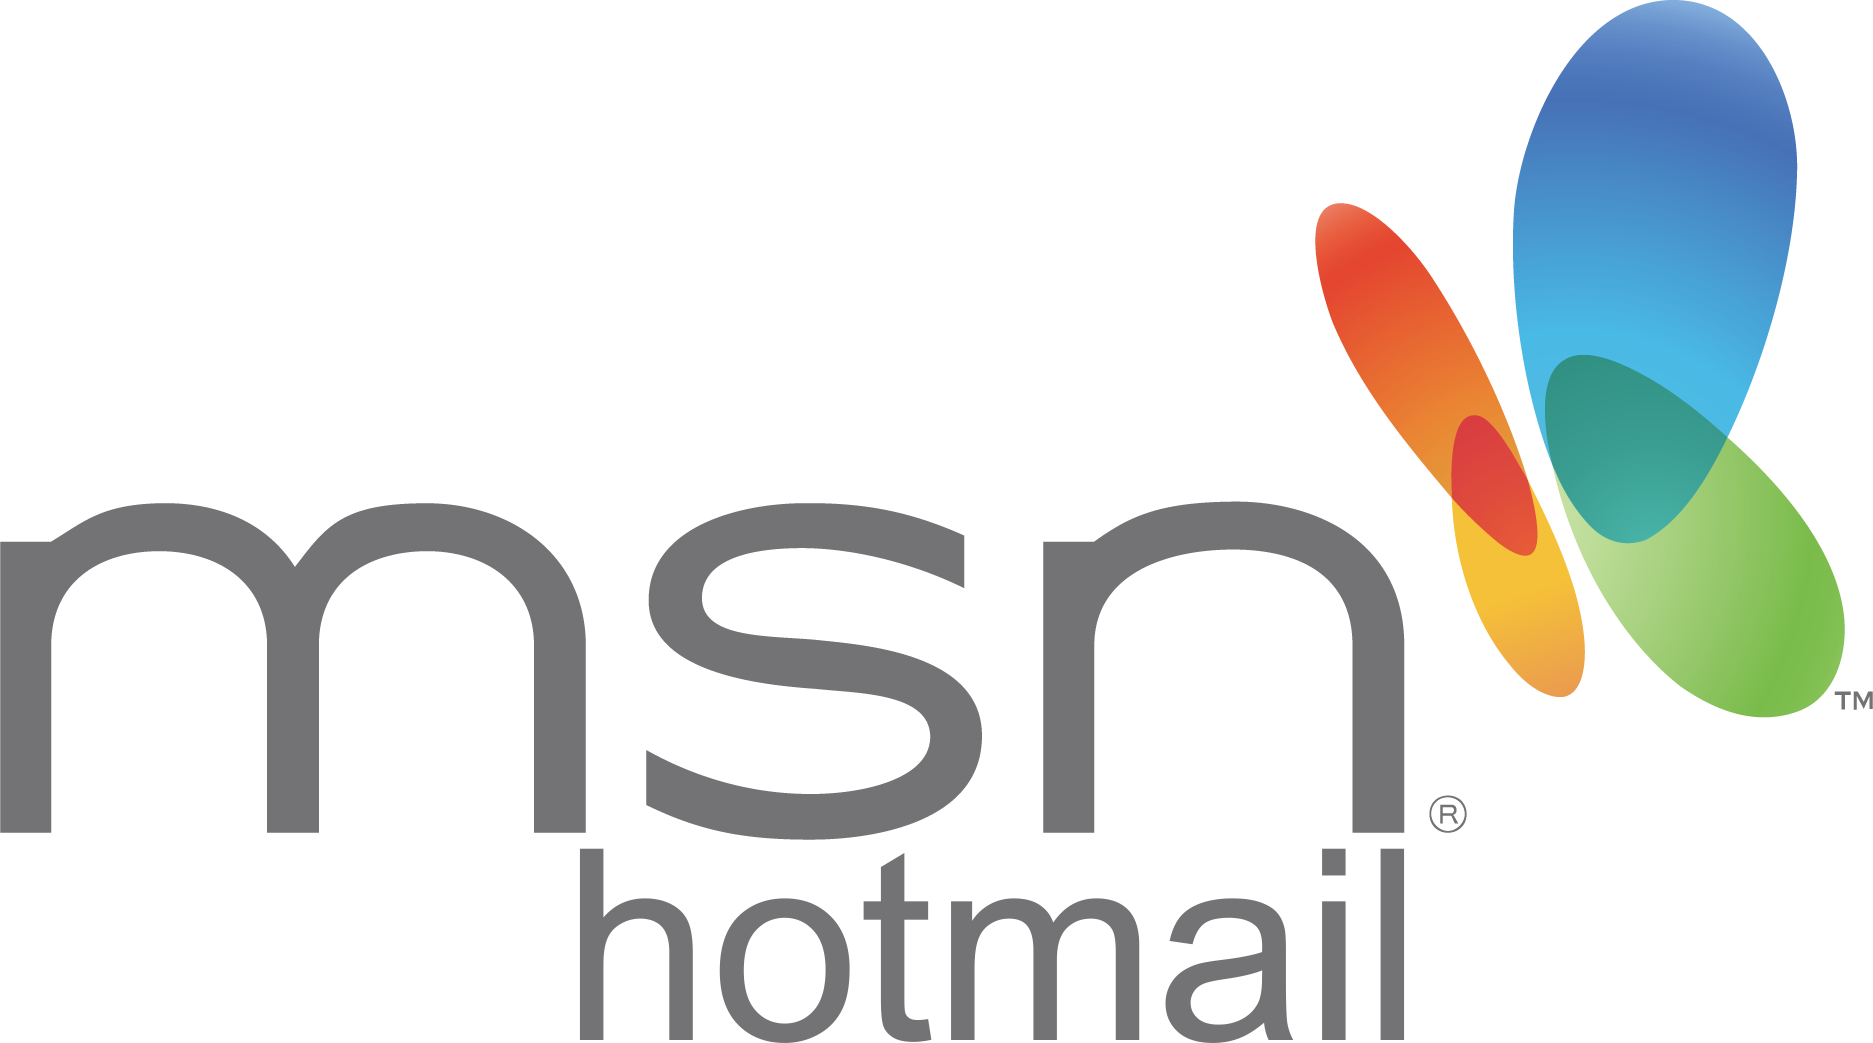 Msn Microsoft Network Email Database